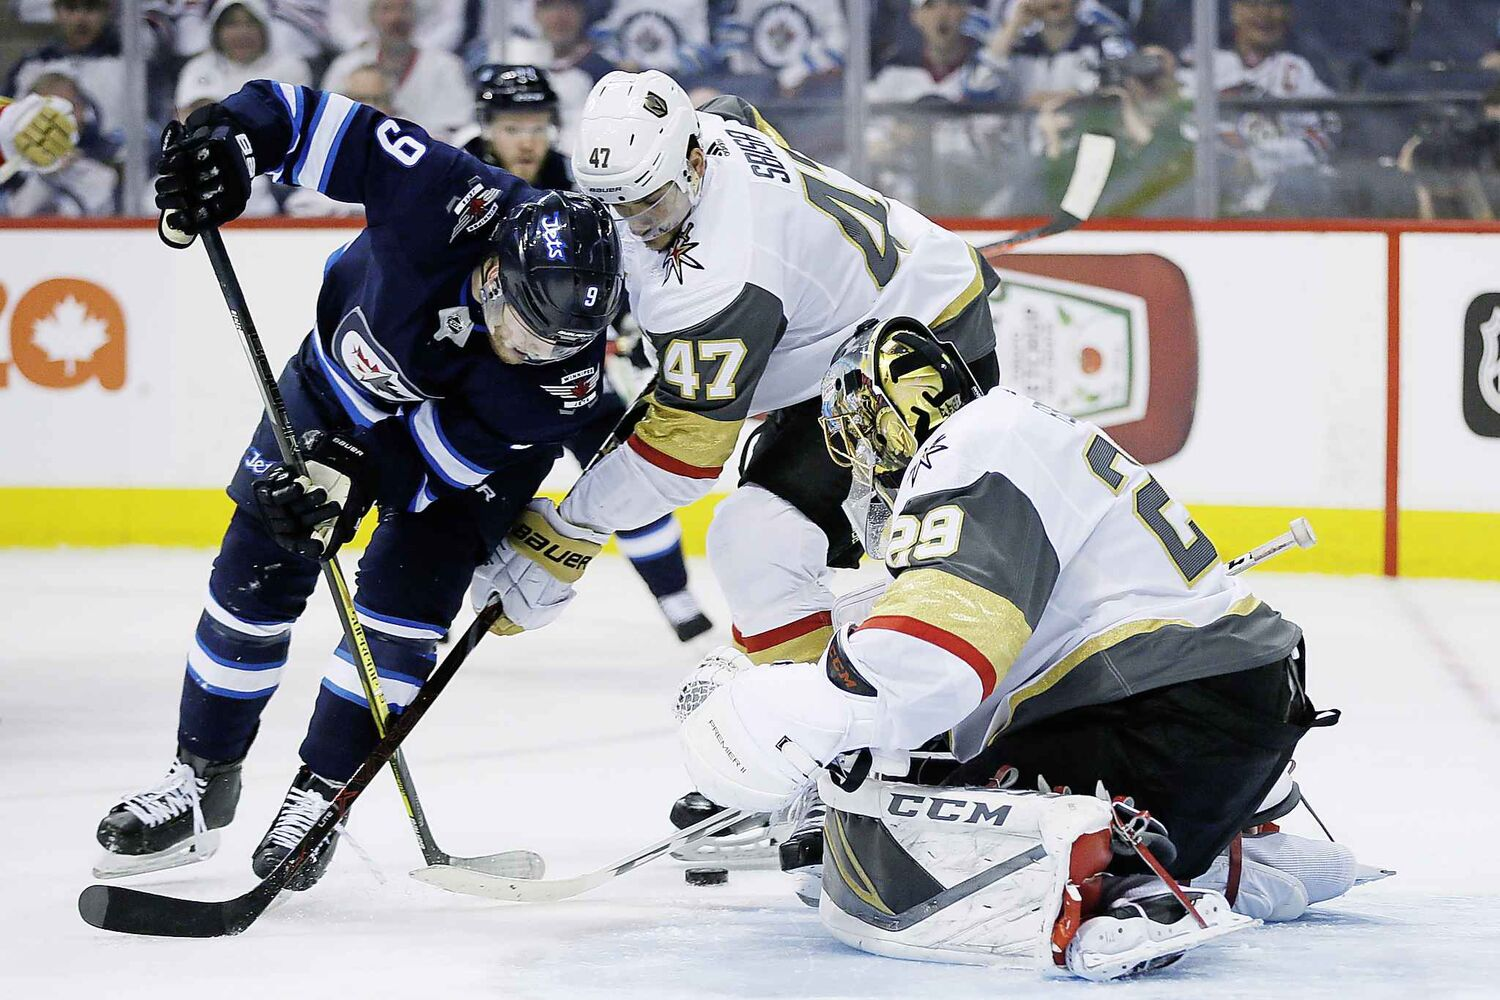 JOHN WOODS / THE CANADIAN PRESS</p><p>Vegas Golden Knights' goaltender Marc-Andre Fleury (29) knocks the puck away from Winnipeg Jets' Andrew Copp (9) as Knights' Luca Sbisa (47) defends during second period of game one action in the NHL Western Conference Final in Winnipeg on Saturday, May 12, 2018.</p>